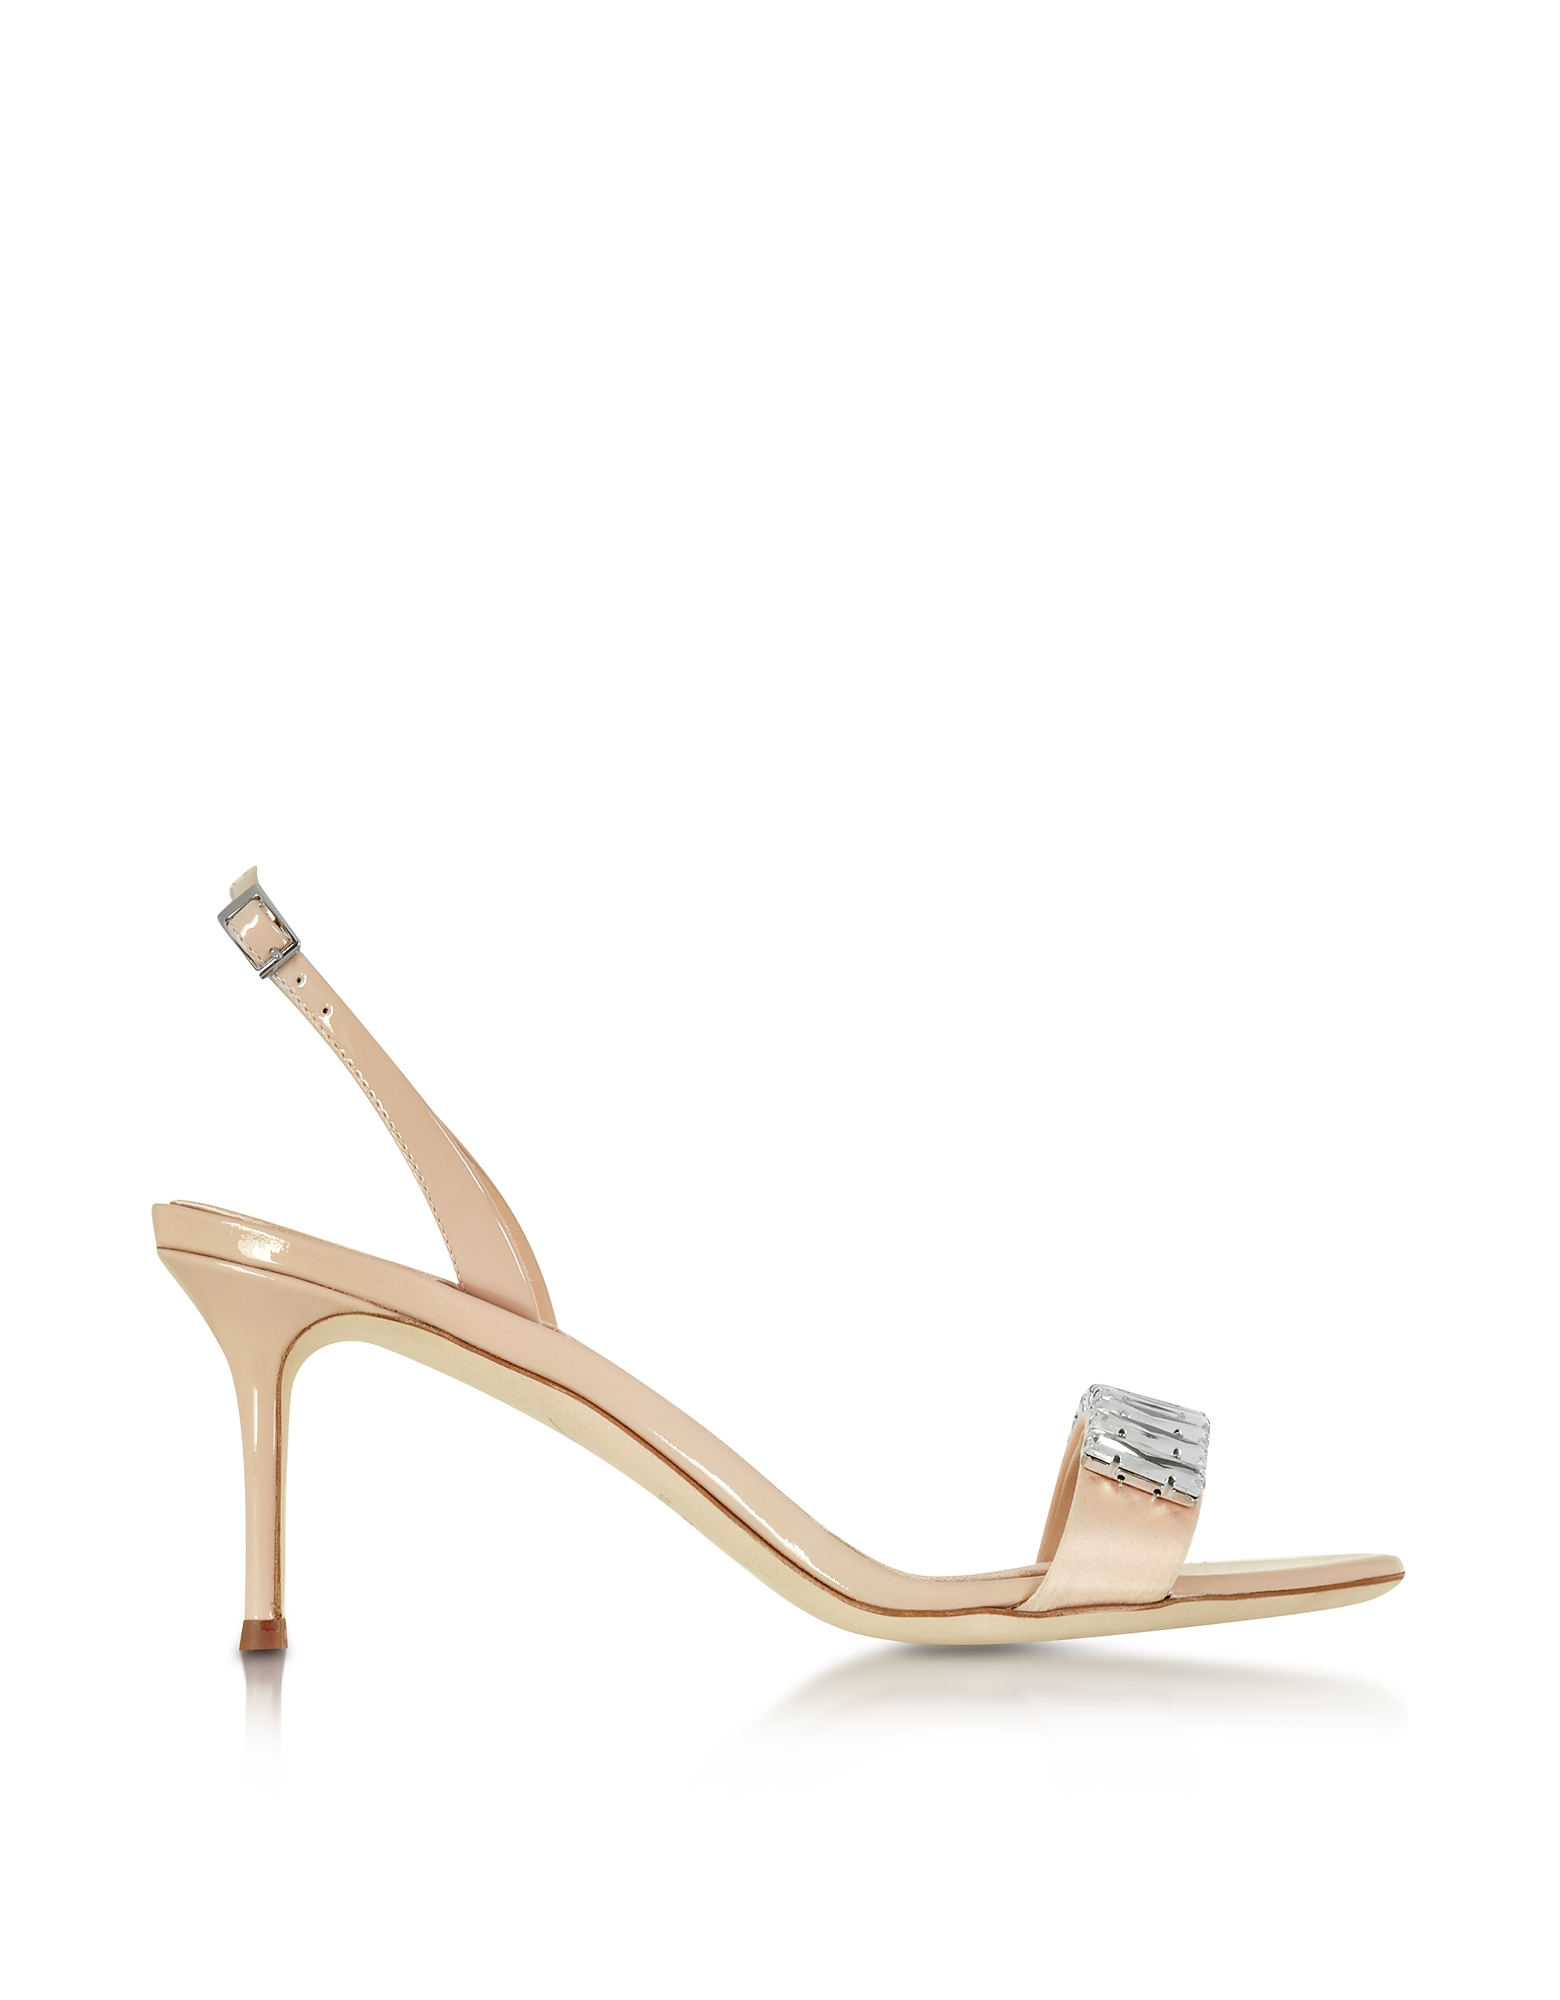 Giuseppe Zanotti Shoes, Powder Pink Satin and Patent Leather Mid Heel Sandal w/Crystals